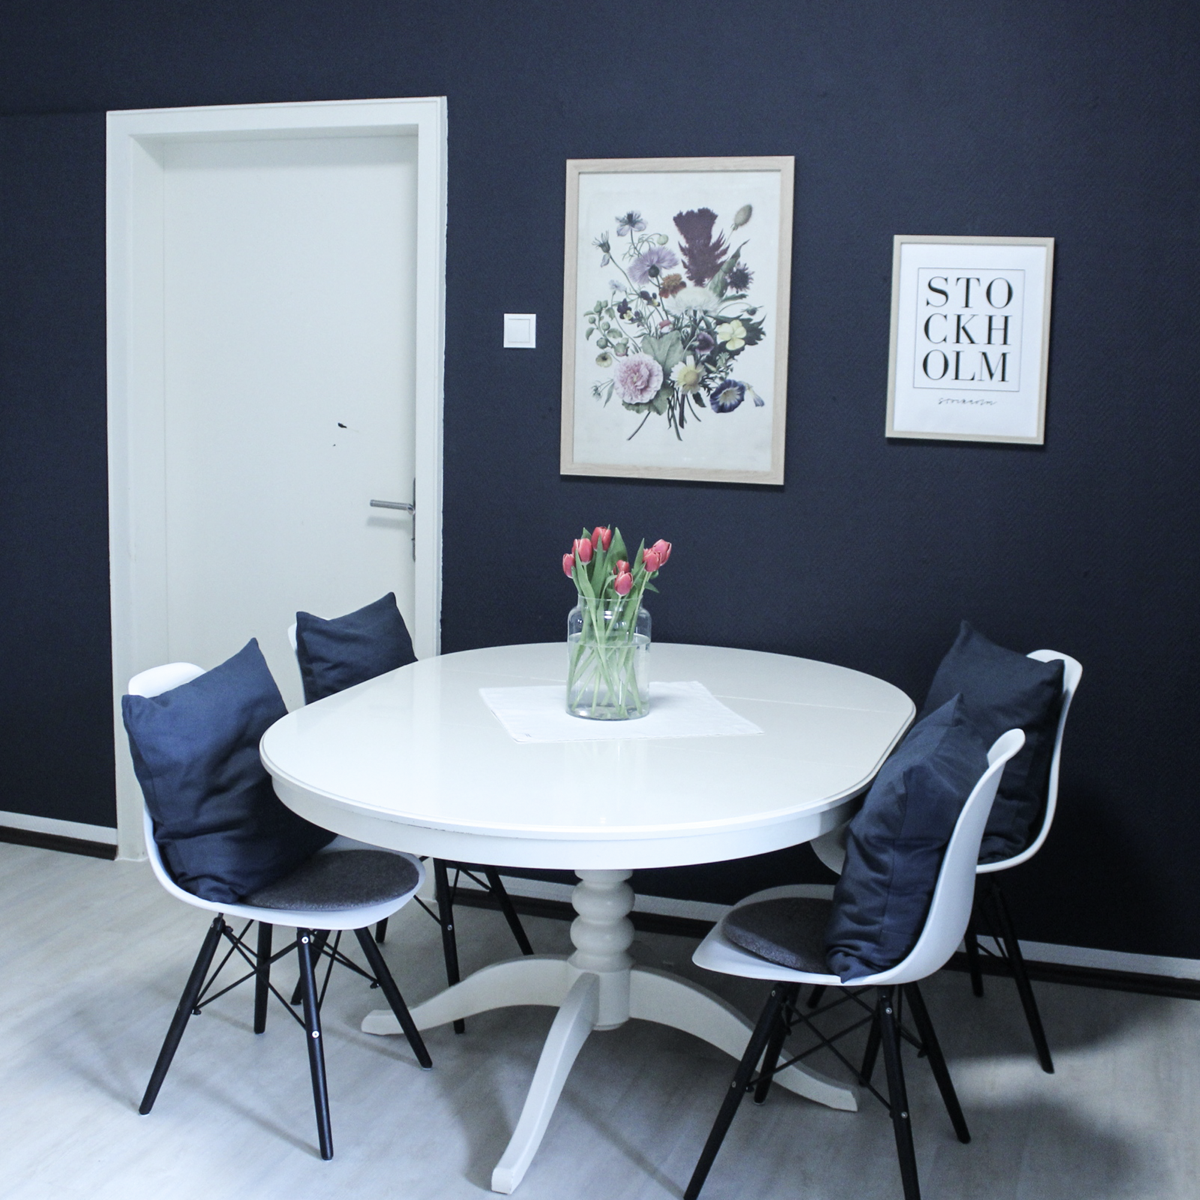 Manager Modern Grau Manager Modern Grau Schlafzimmer Modern Grau Delightful To Help My Own Weblog In This Occasion I In 2020 Interior Design Room Colors Home Decor